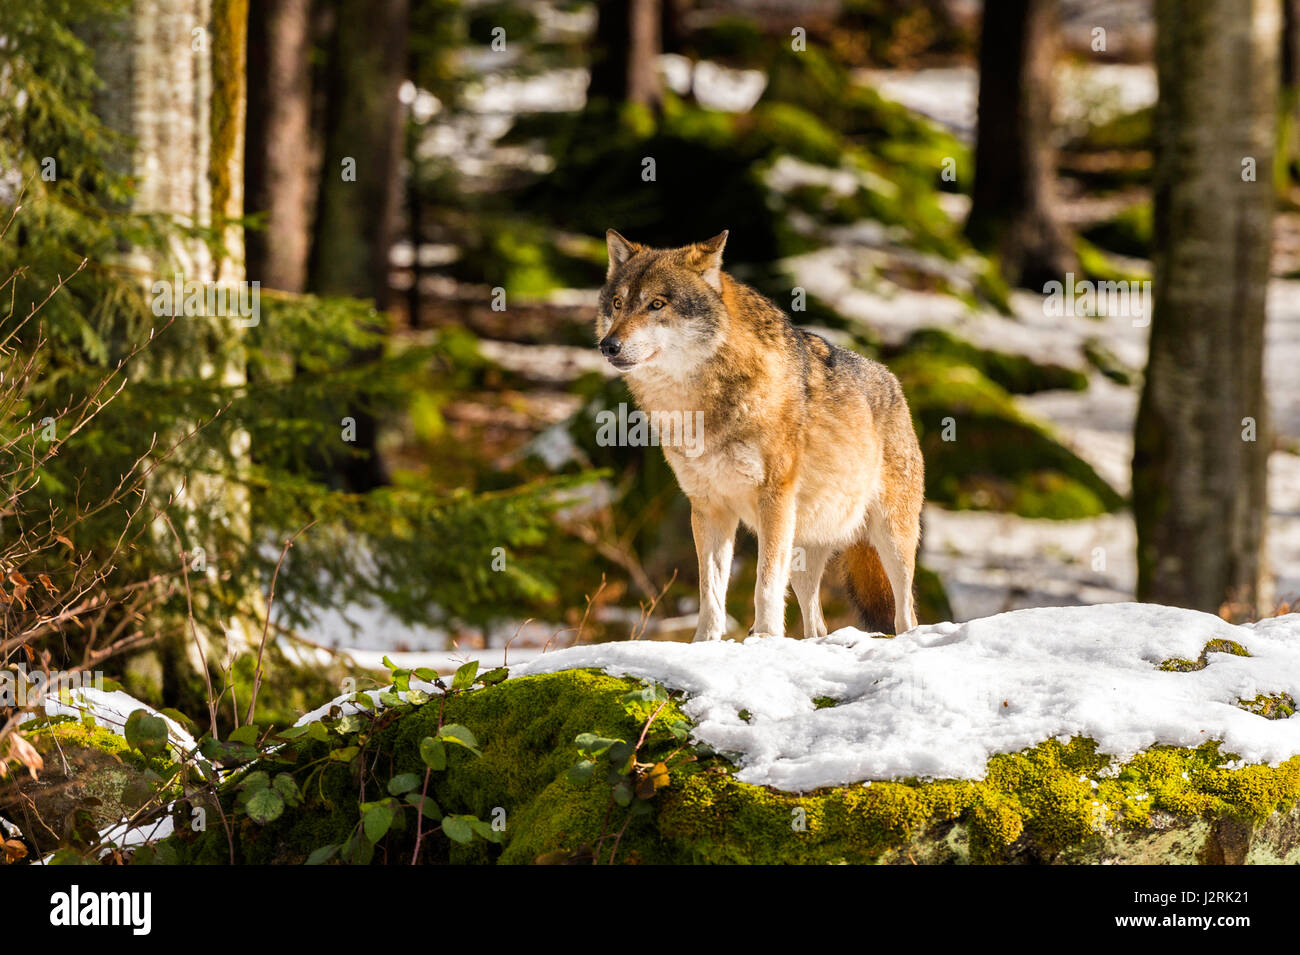 Beautiful single adult Grey Wolf (Canis lupus) Alpha Male depicted posturing menacingly from a vantage point in - Stock Image